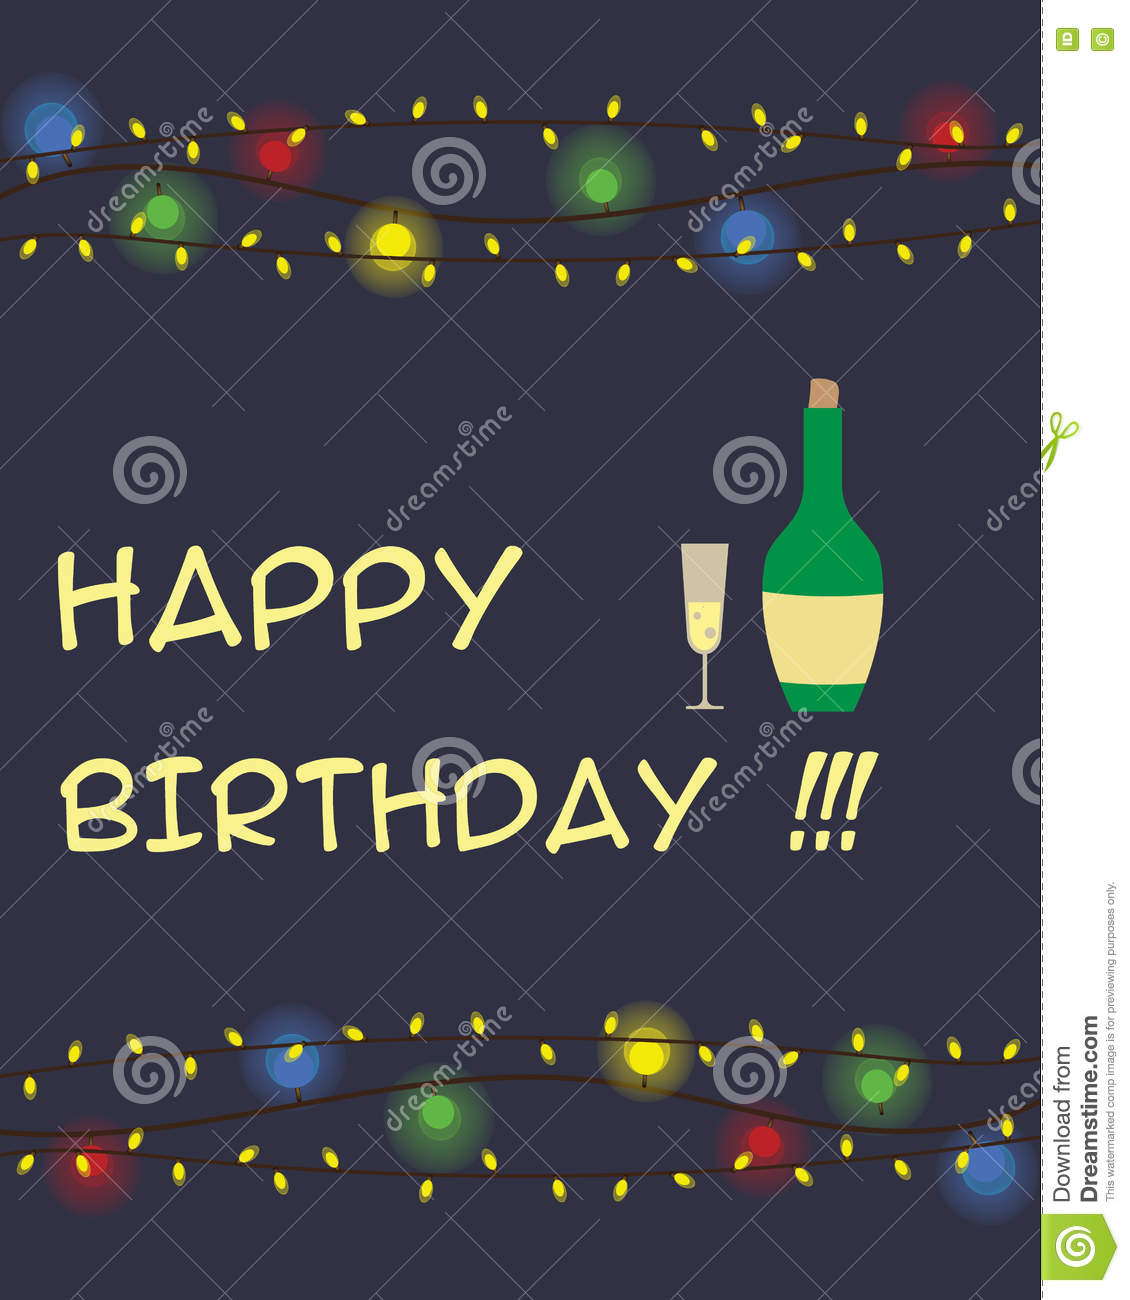 Happy Birthday Greeting Card Stock Vector Illustration Of Template